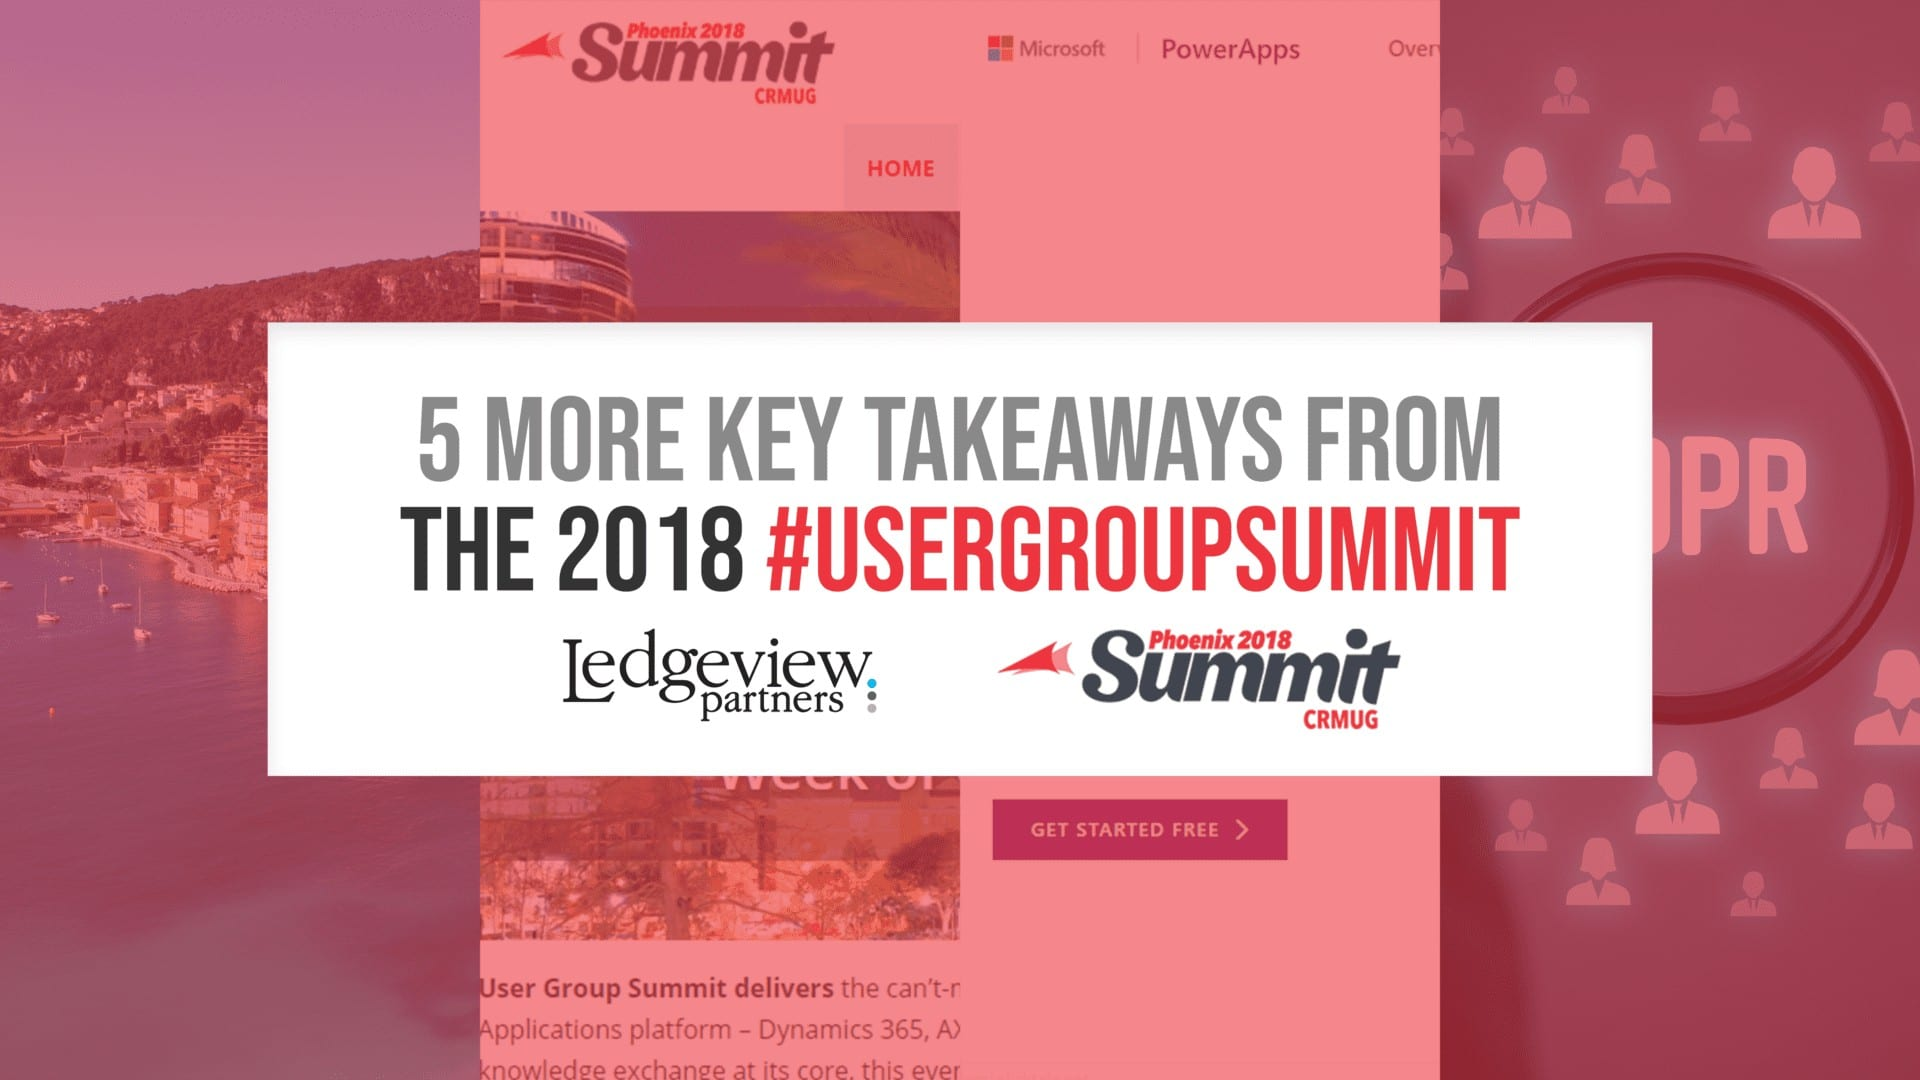 5 More Key Takeaways from the 2018 #UserGroupSummit